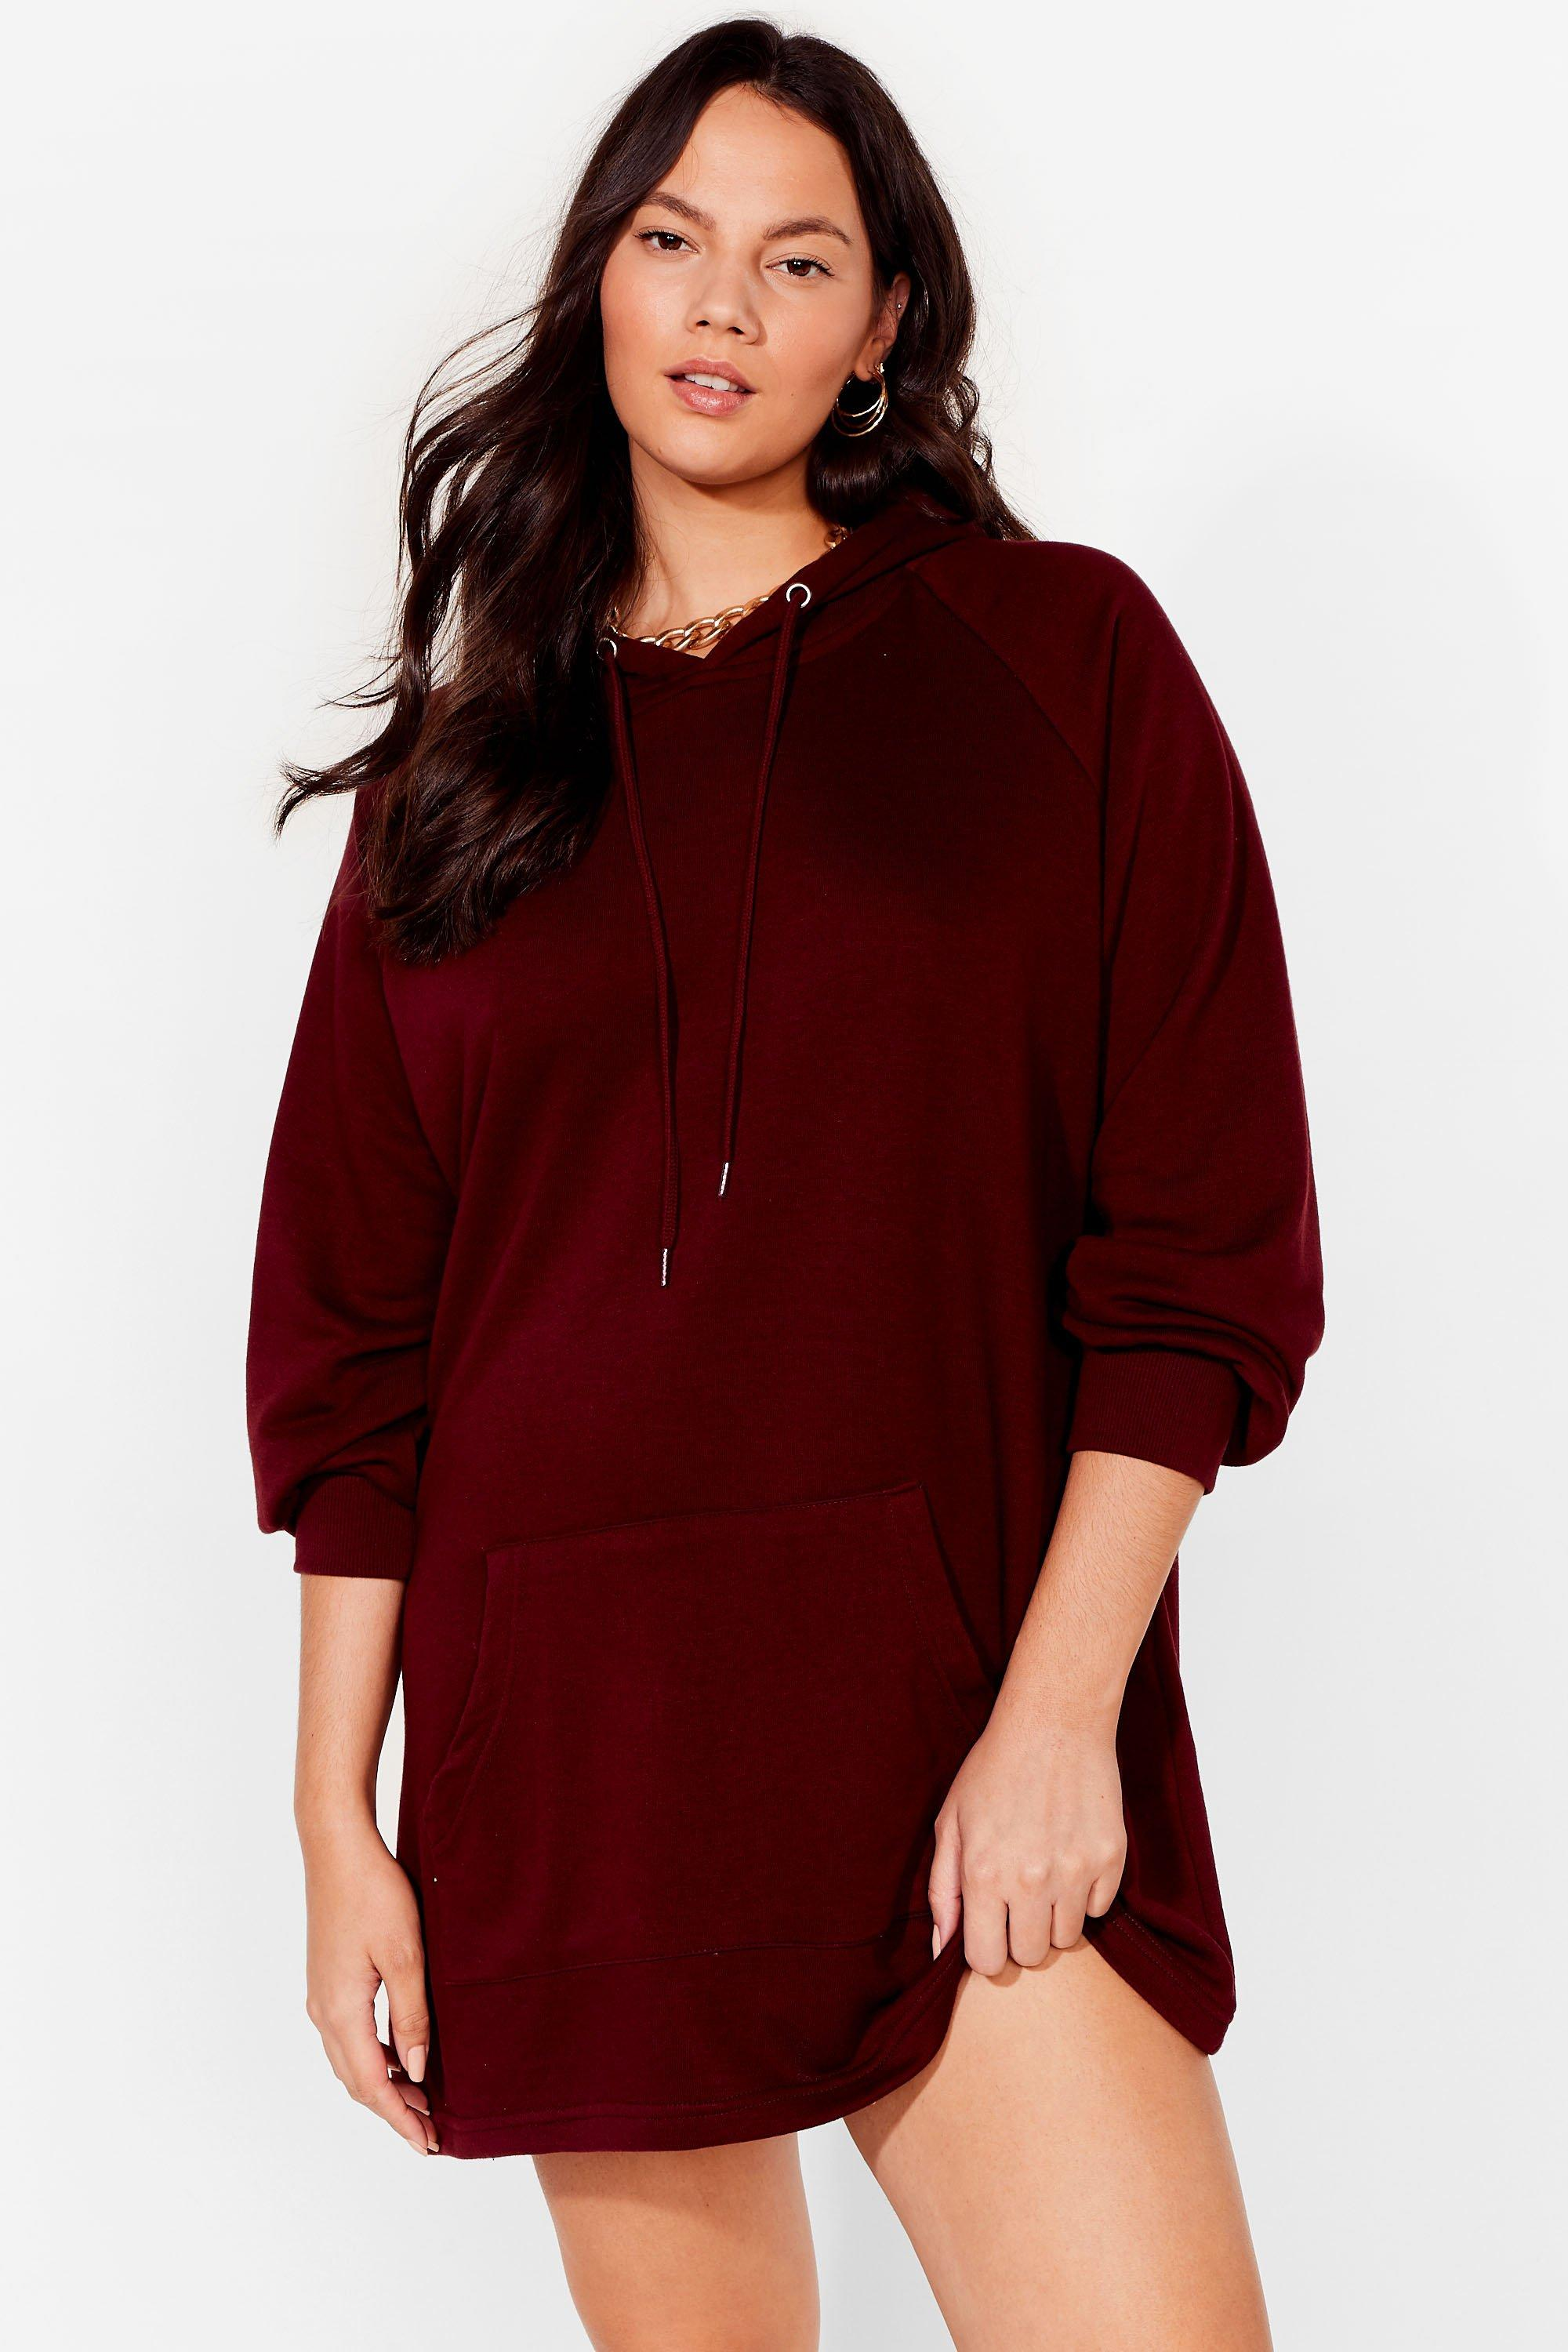 All Night Longline Plus Oversized Hoodie Dress 16